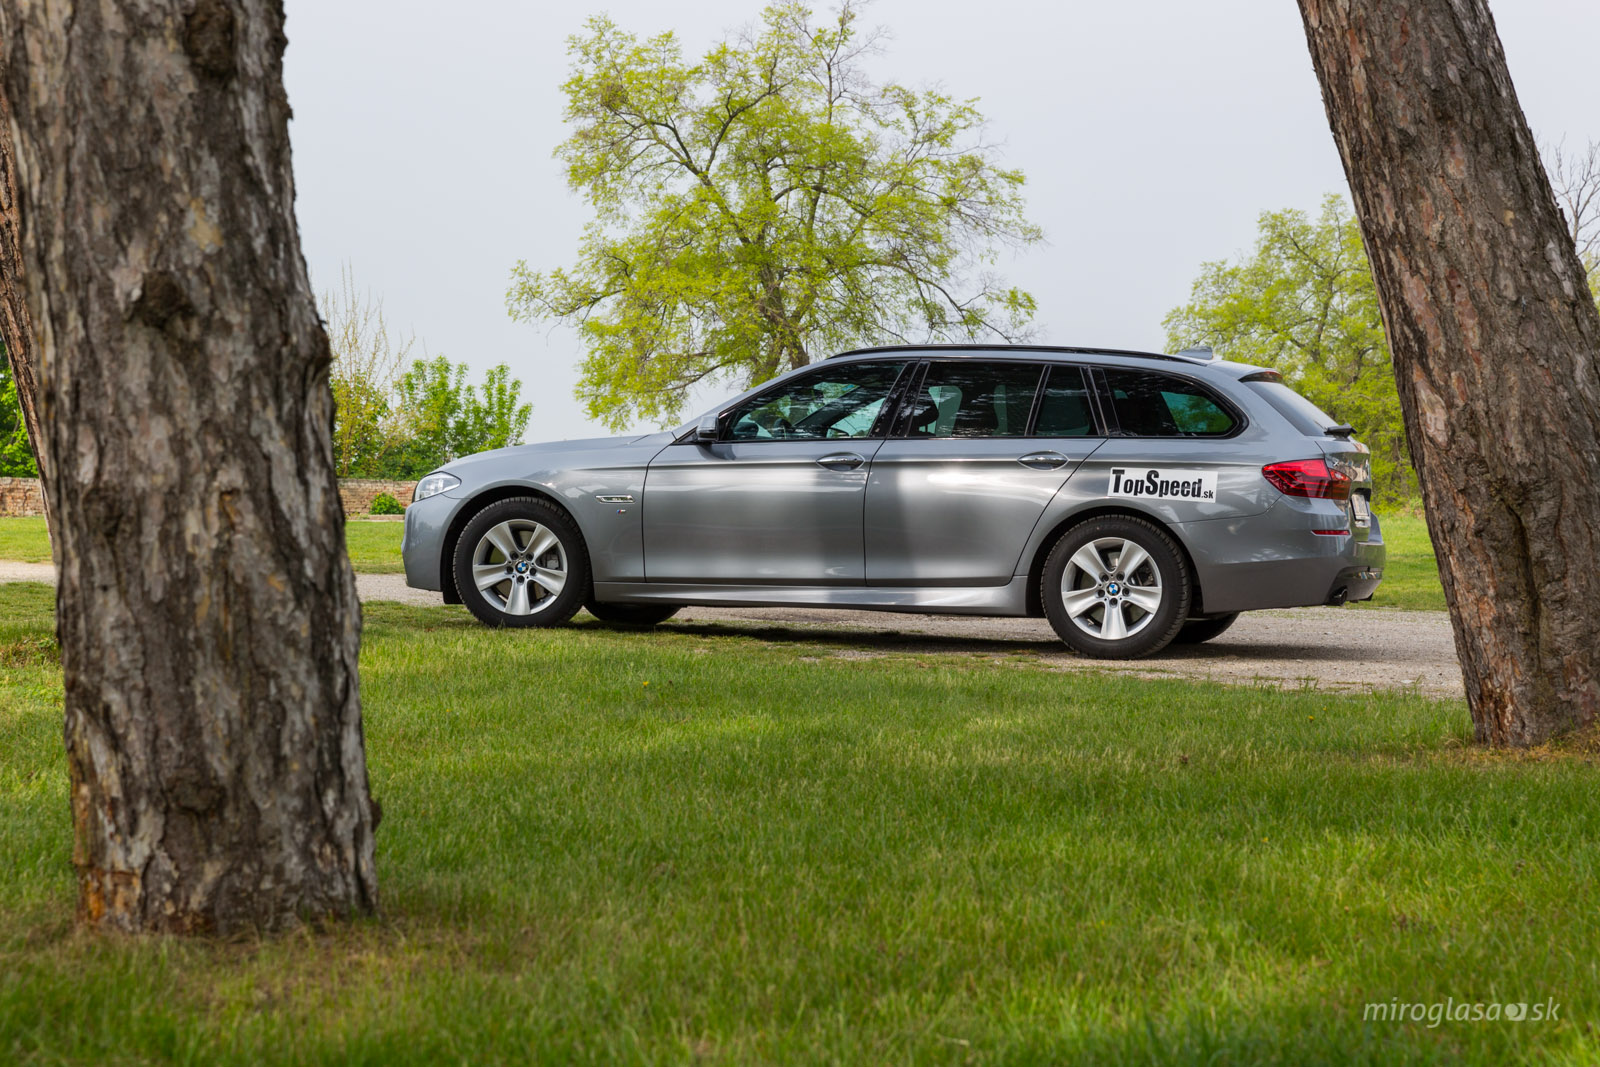 Test BMW 535d Touring xDrive F11 - TopSpeed sk